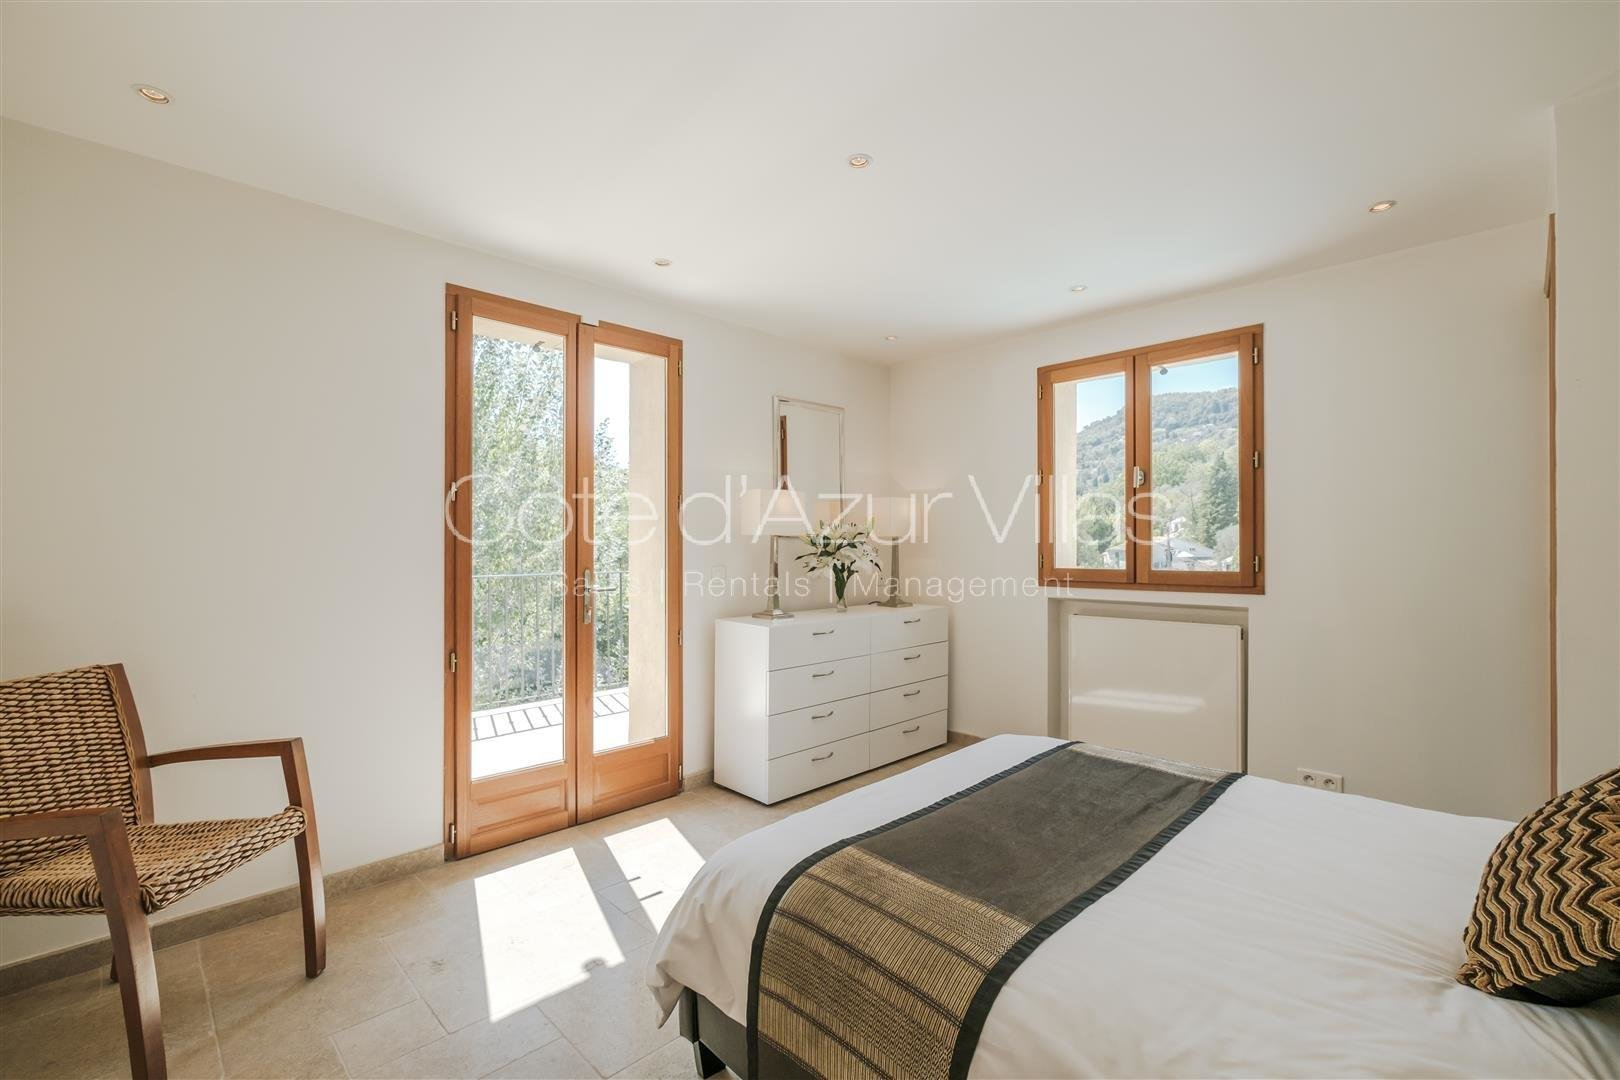 Grasse - 5 bedroom property, quiet area and open hill view